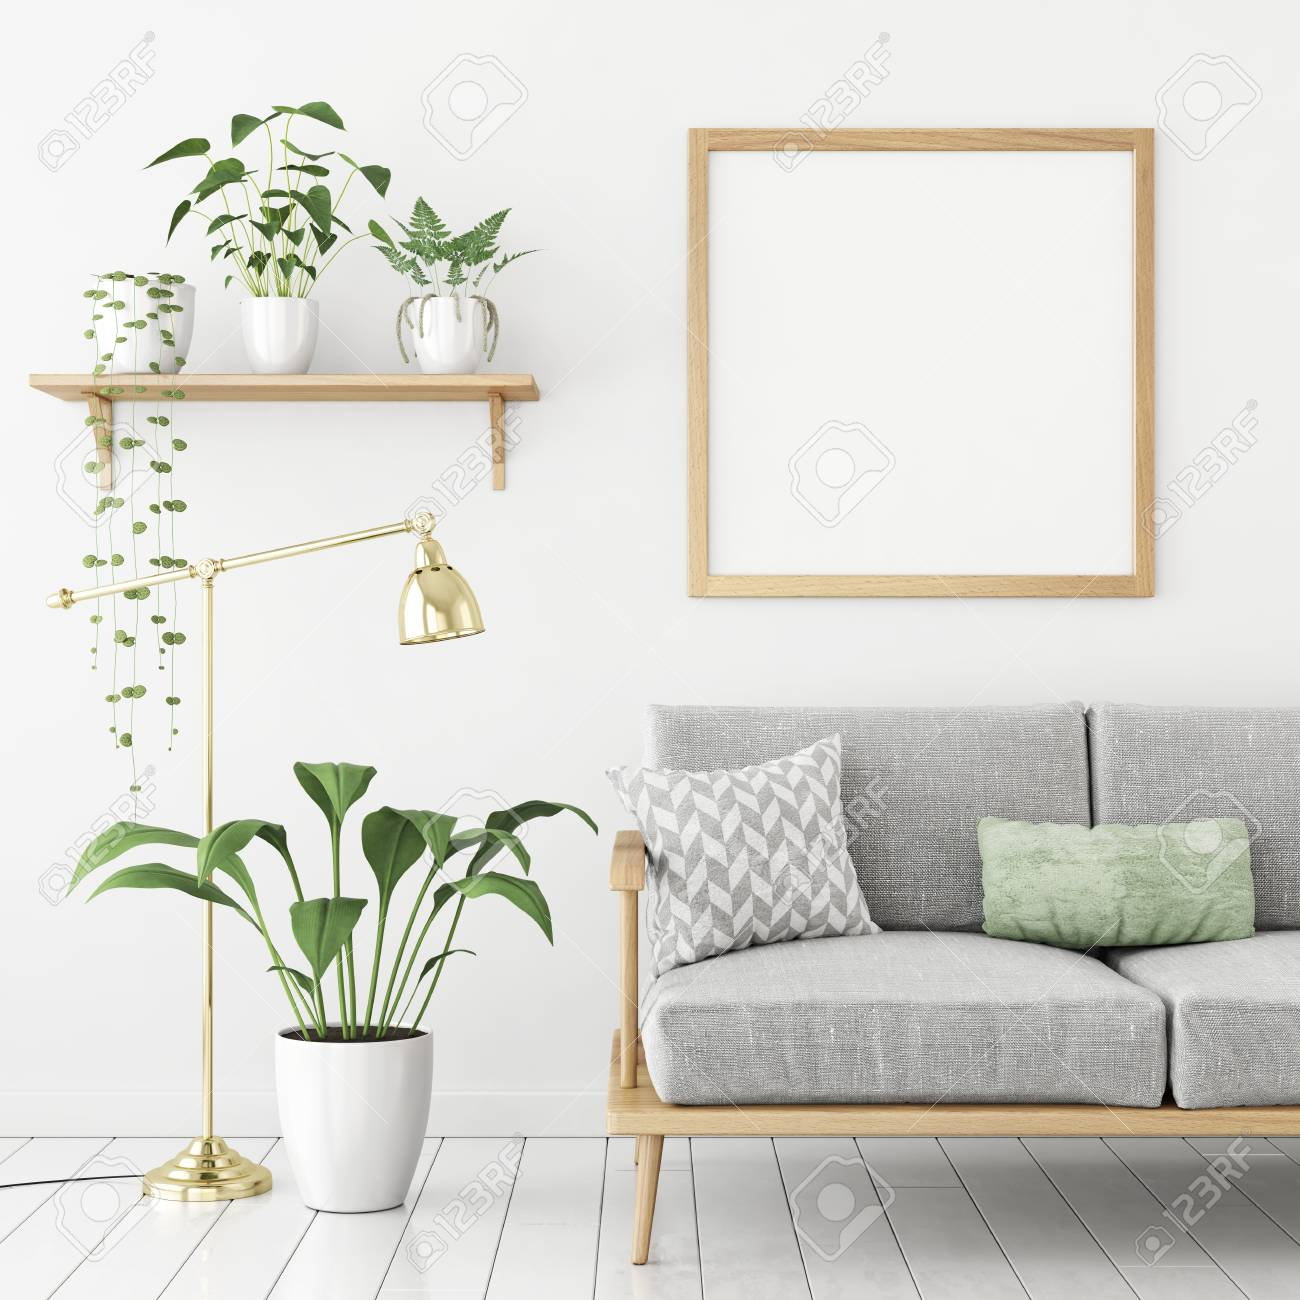 Square Poster Mock Up With Wooden Frame, Sofa And Green Plants ...